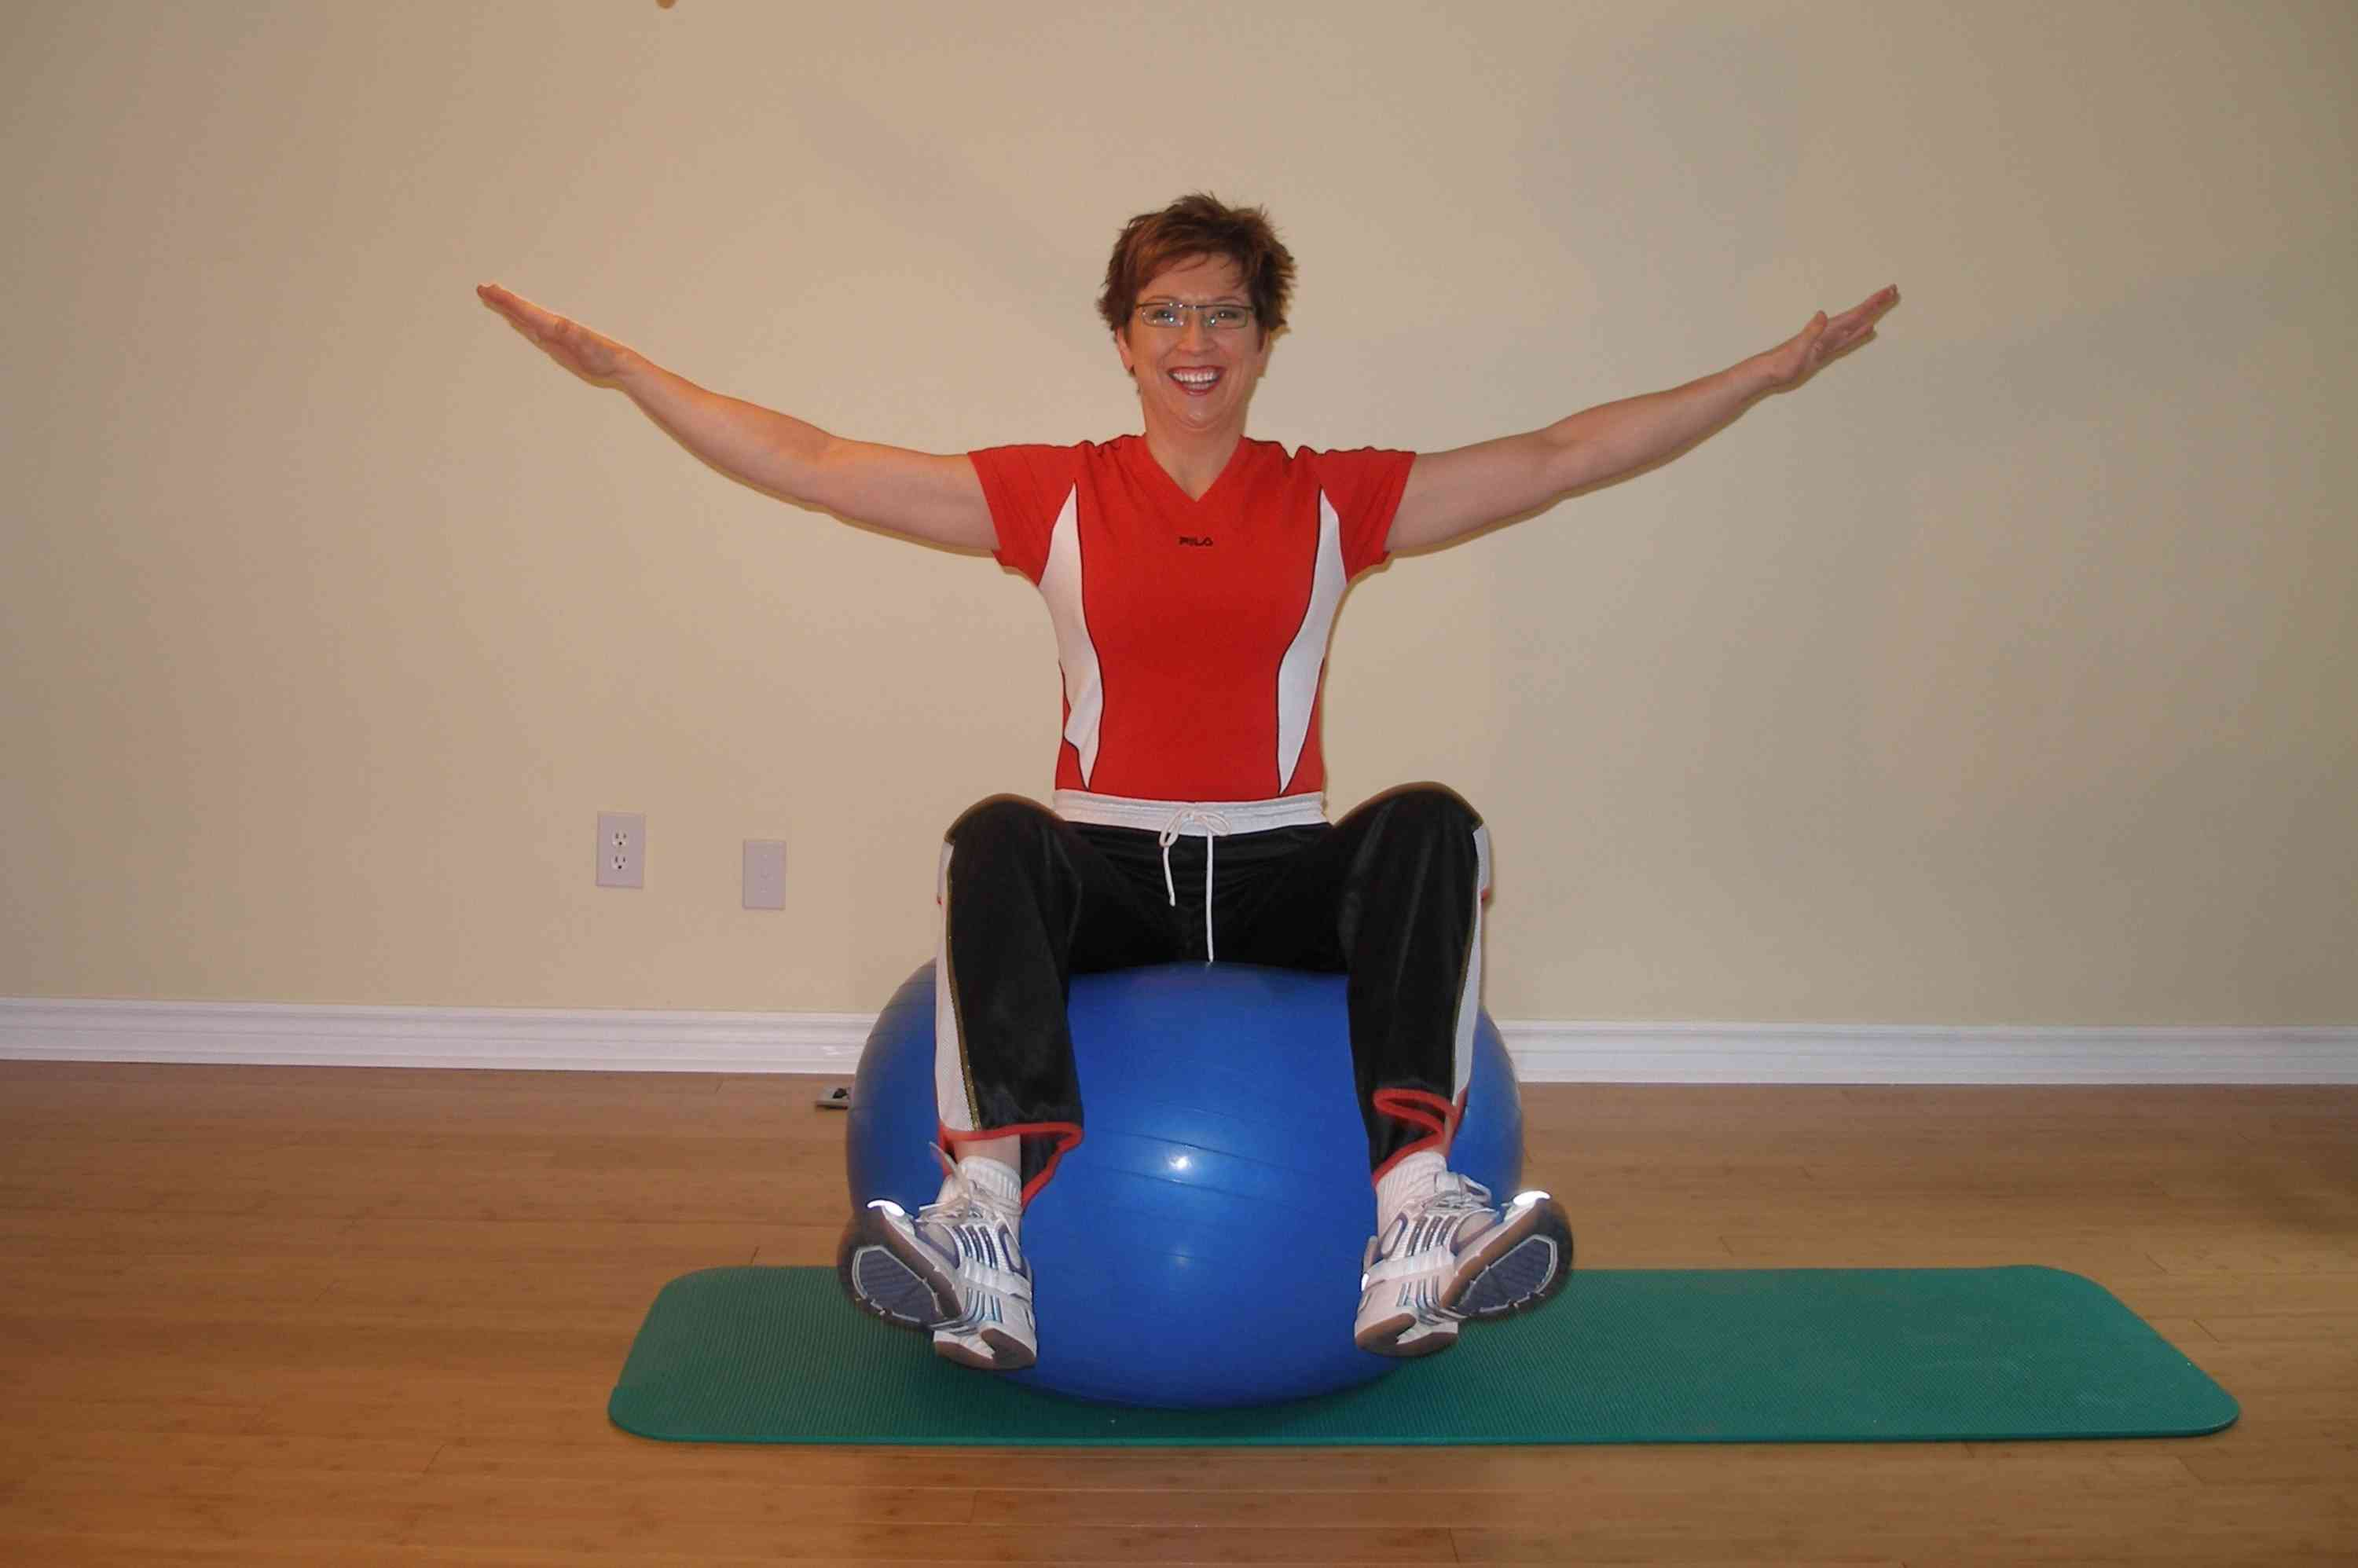 bilateral leg raise on a stability ball finish